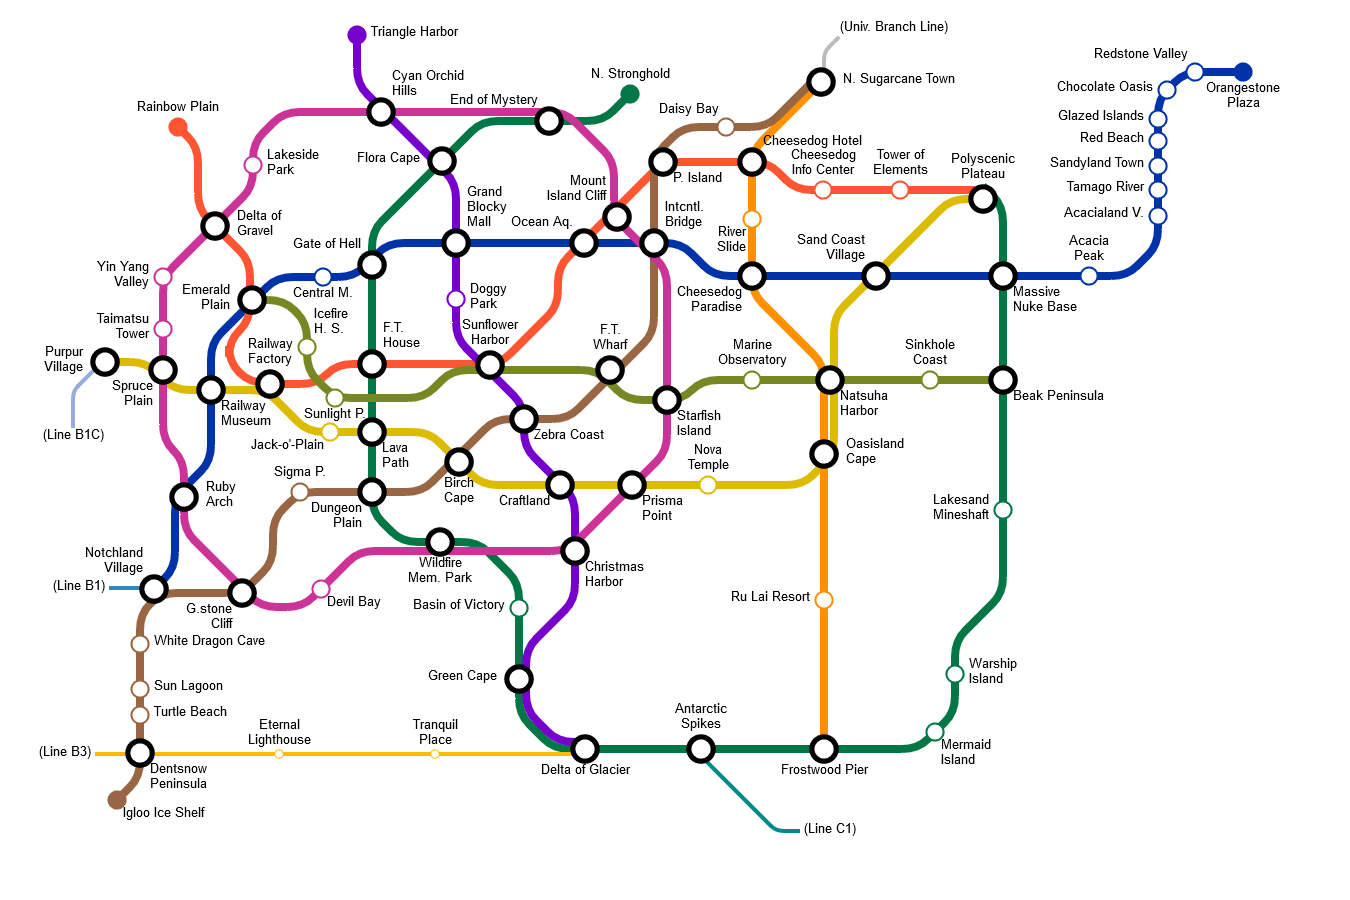 The subway map for Republic of FlashTeens